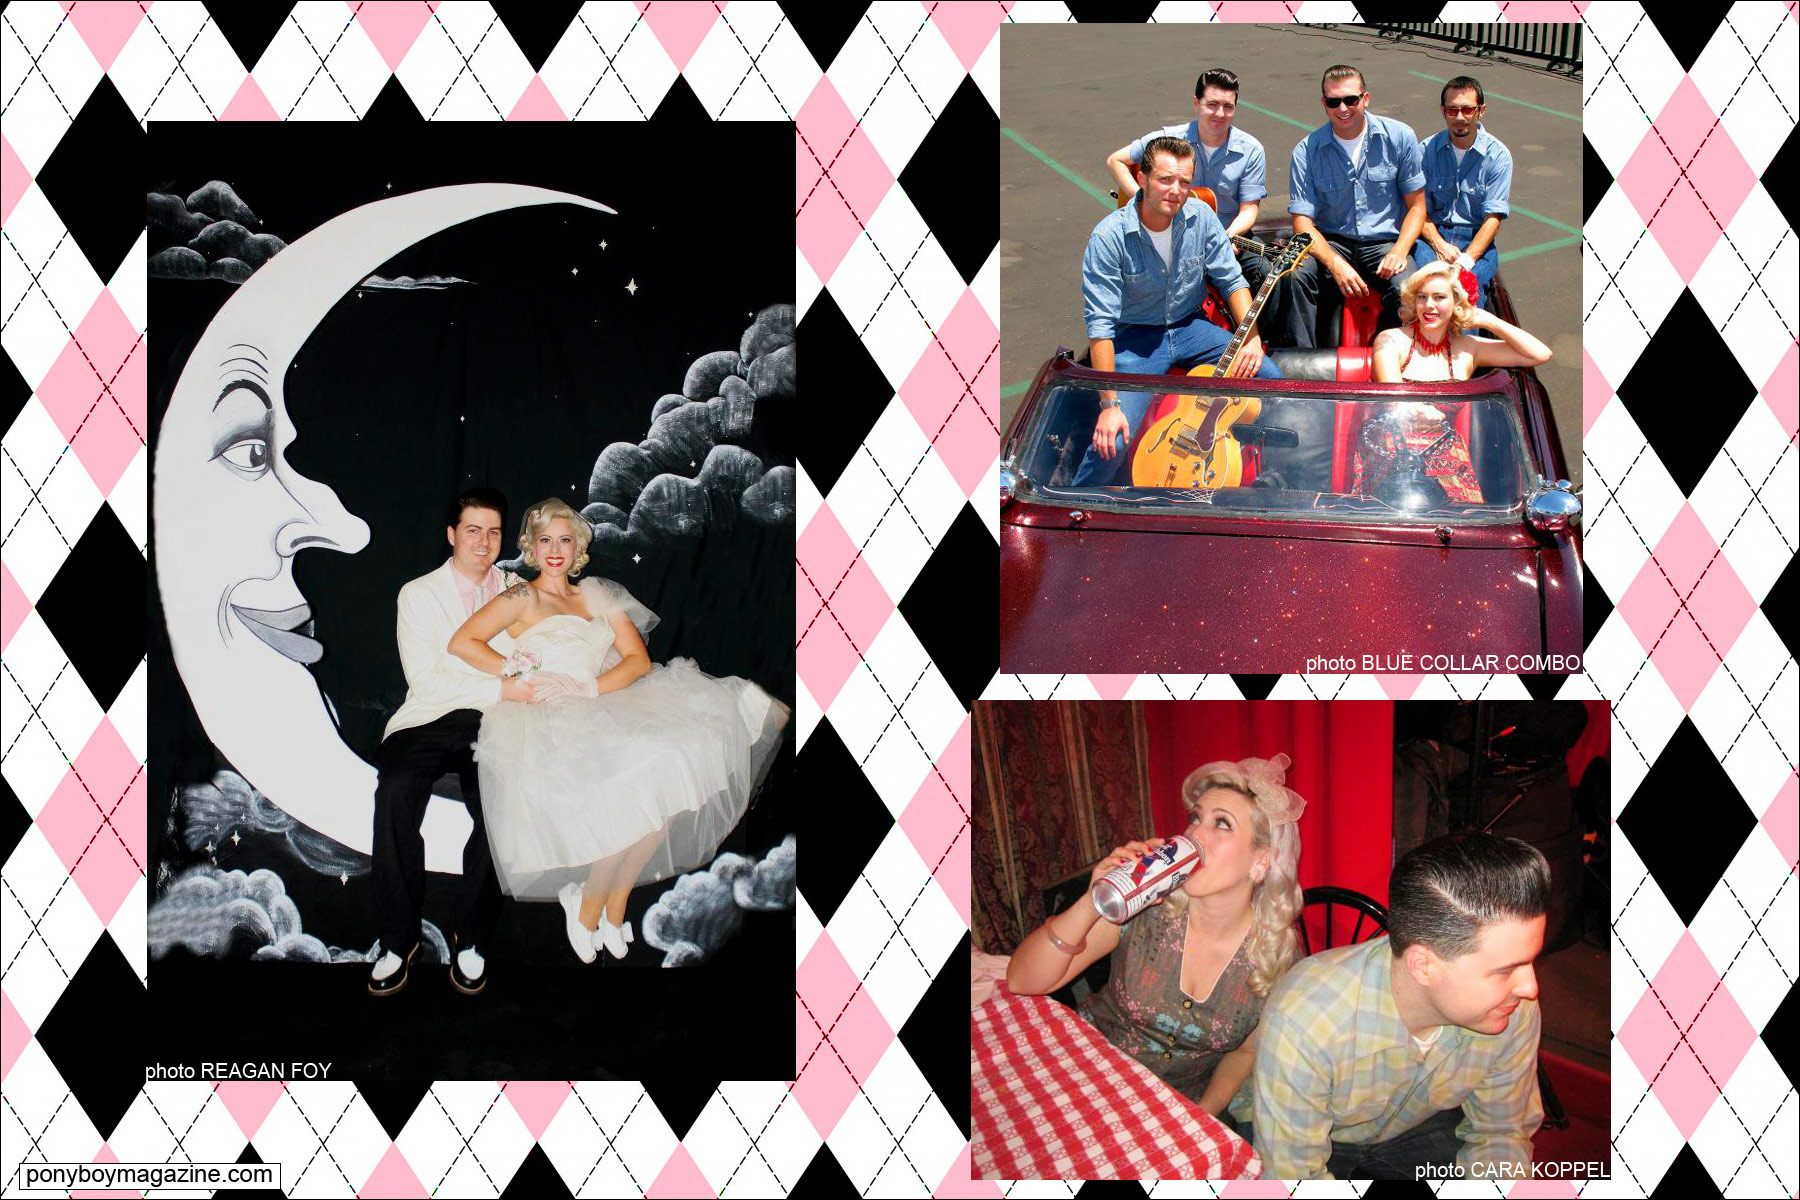 Assorted images of Dollie Deville, also known as The Rockabilly Socialite, with husband Zack Simpson. Ponyboy Magazine.